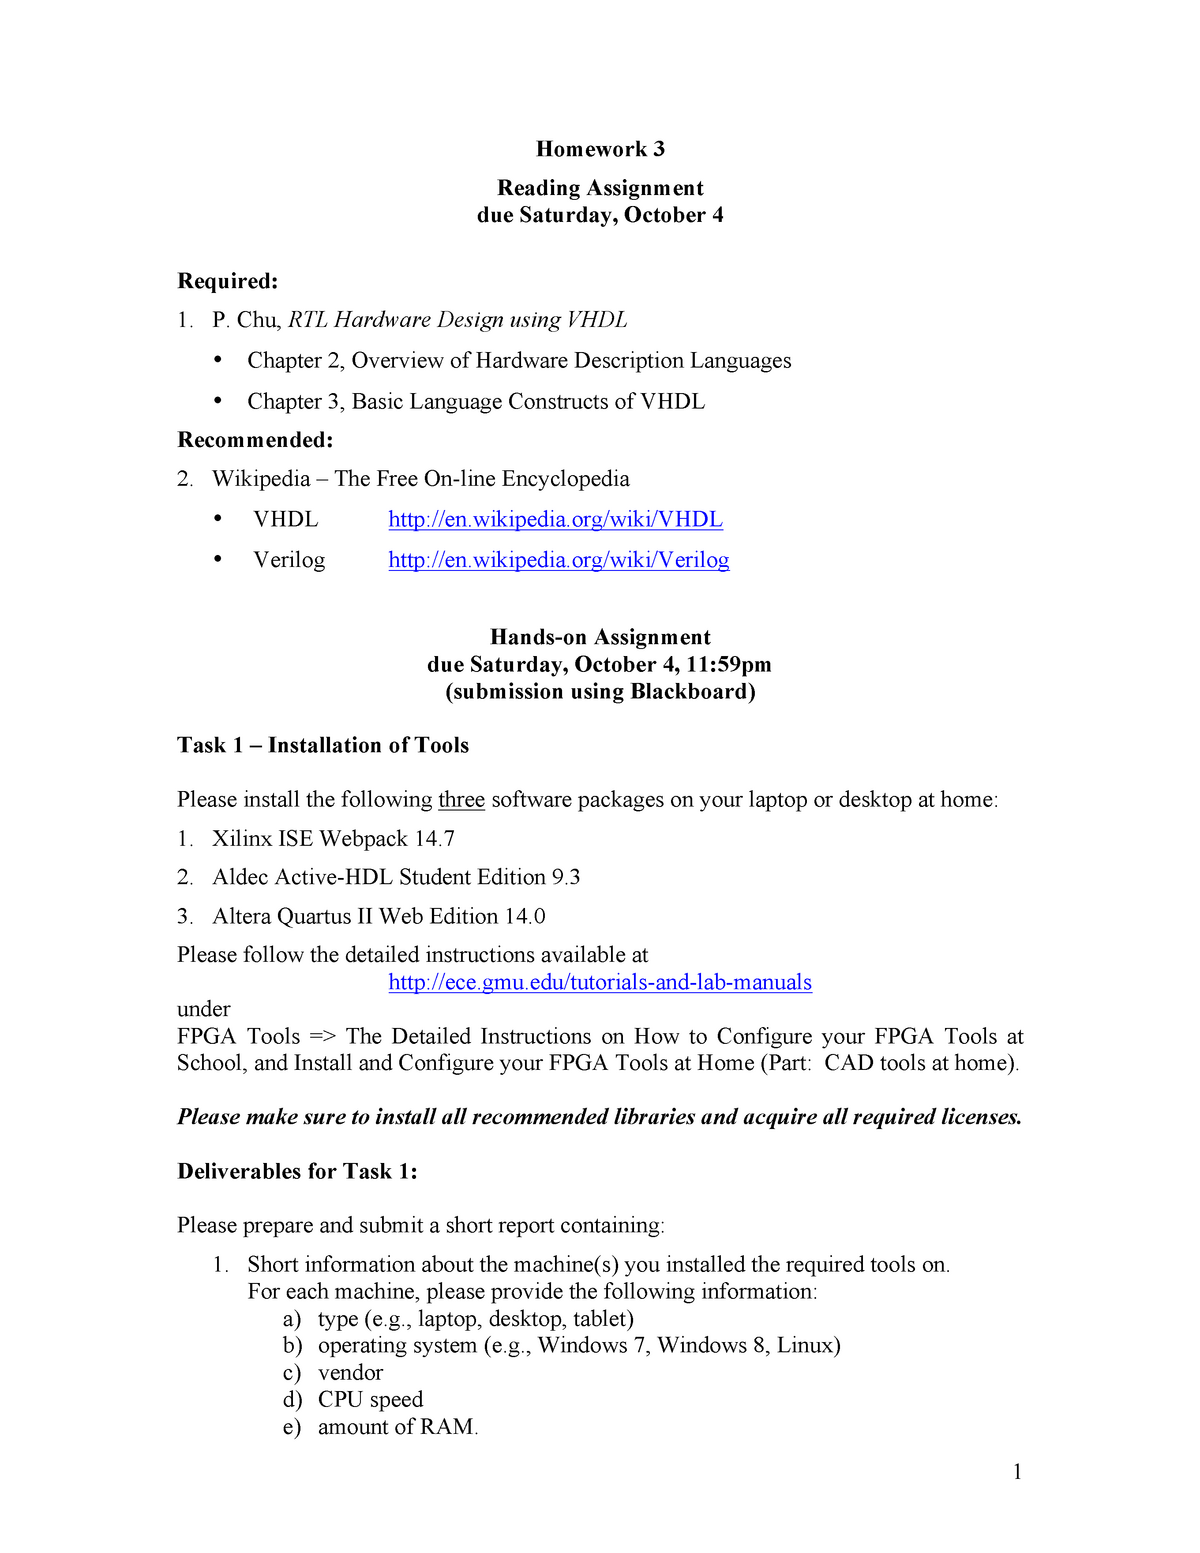 Seminar assignments - Homework 3 - ECE 545: Introduction To Vhdl